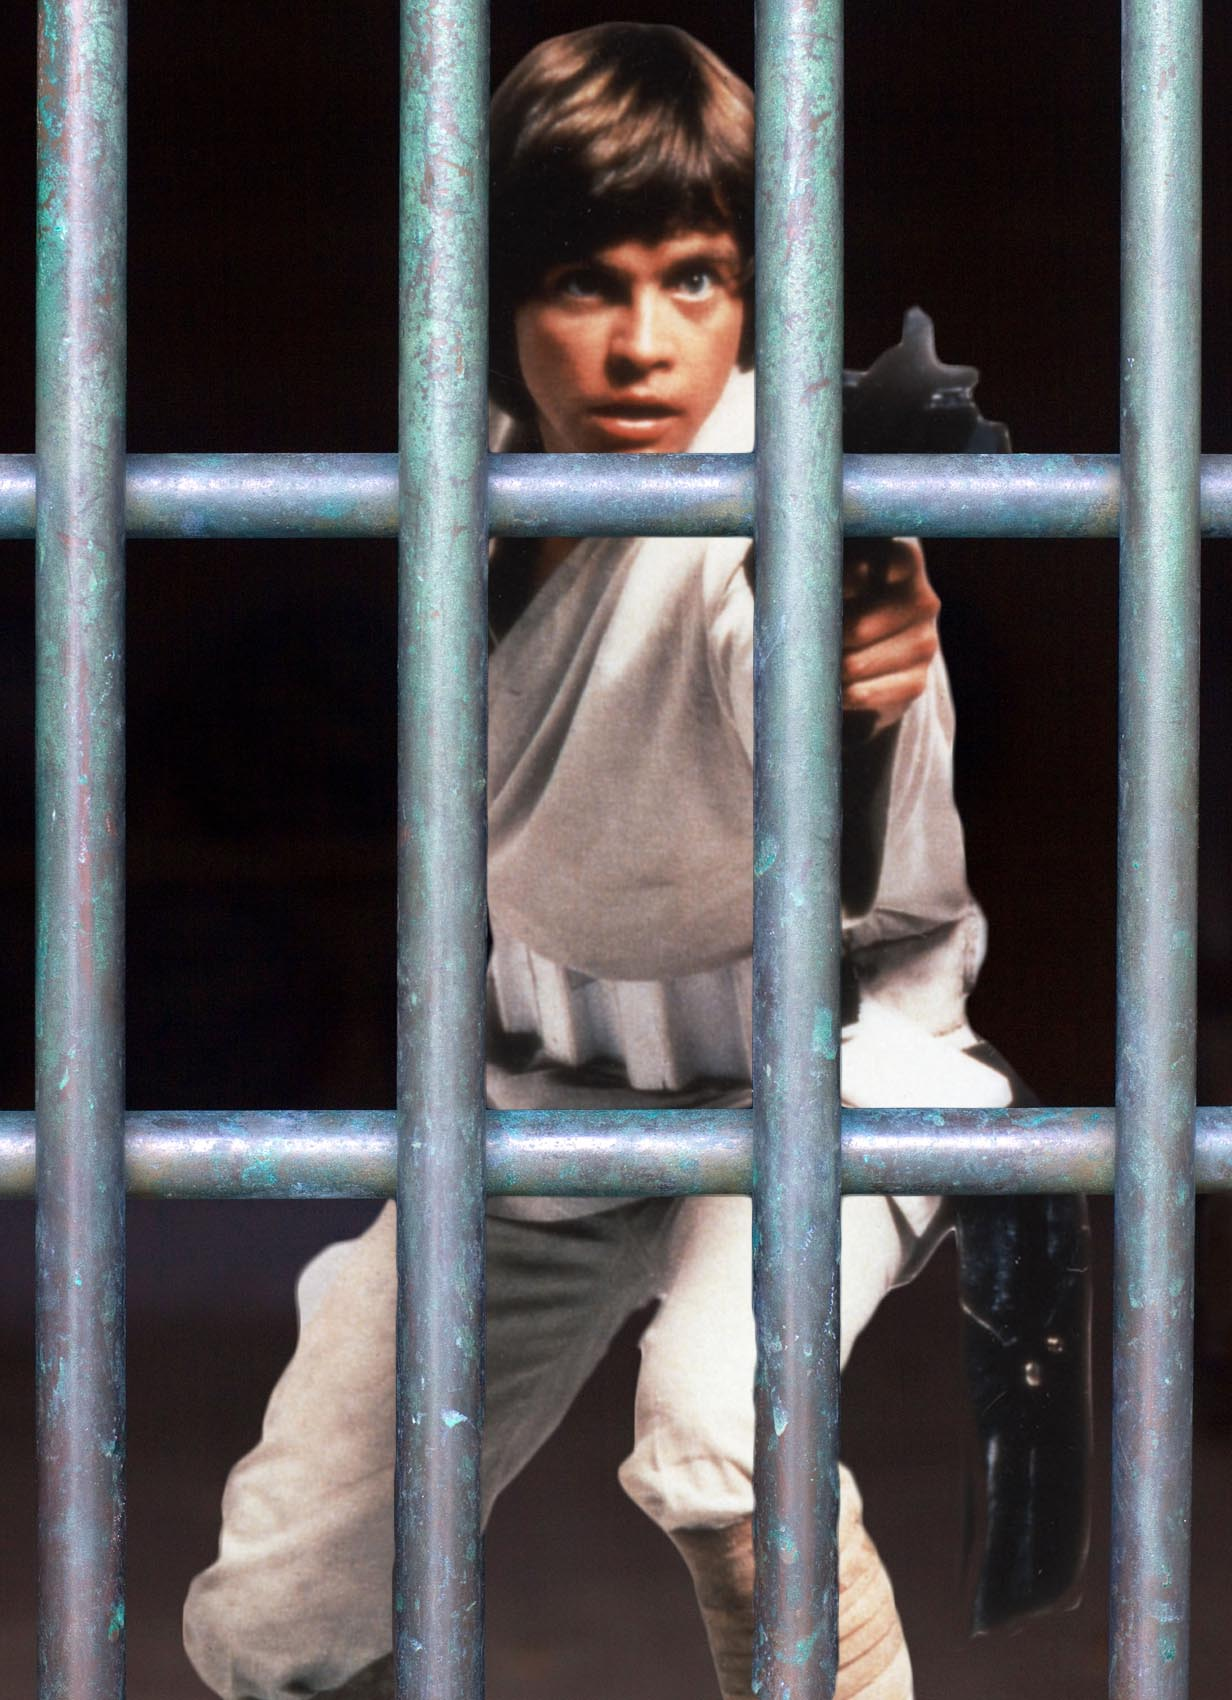 Jedi jailbirds to sue prison service for not recognising their faith